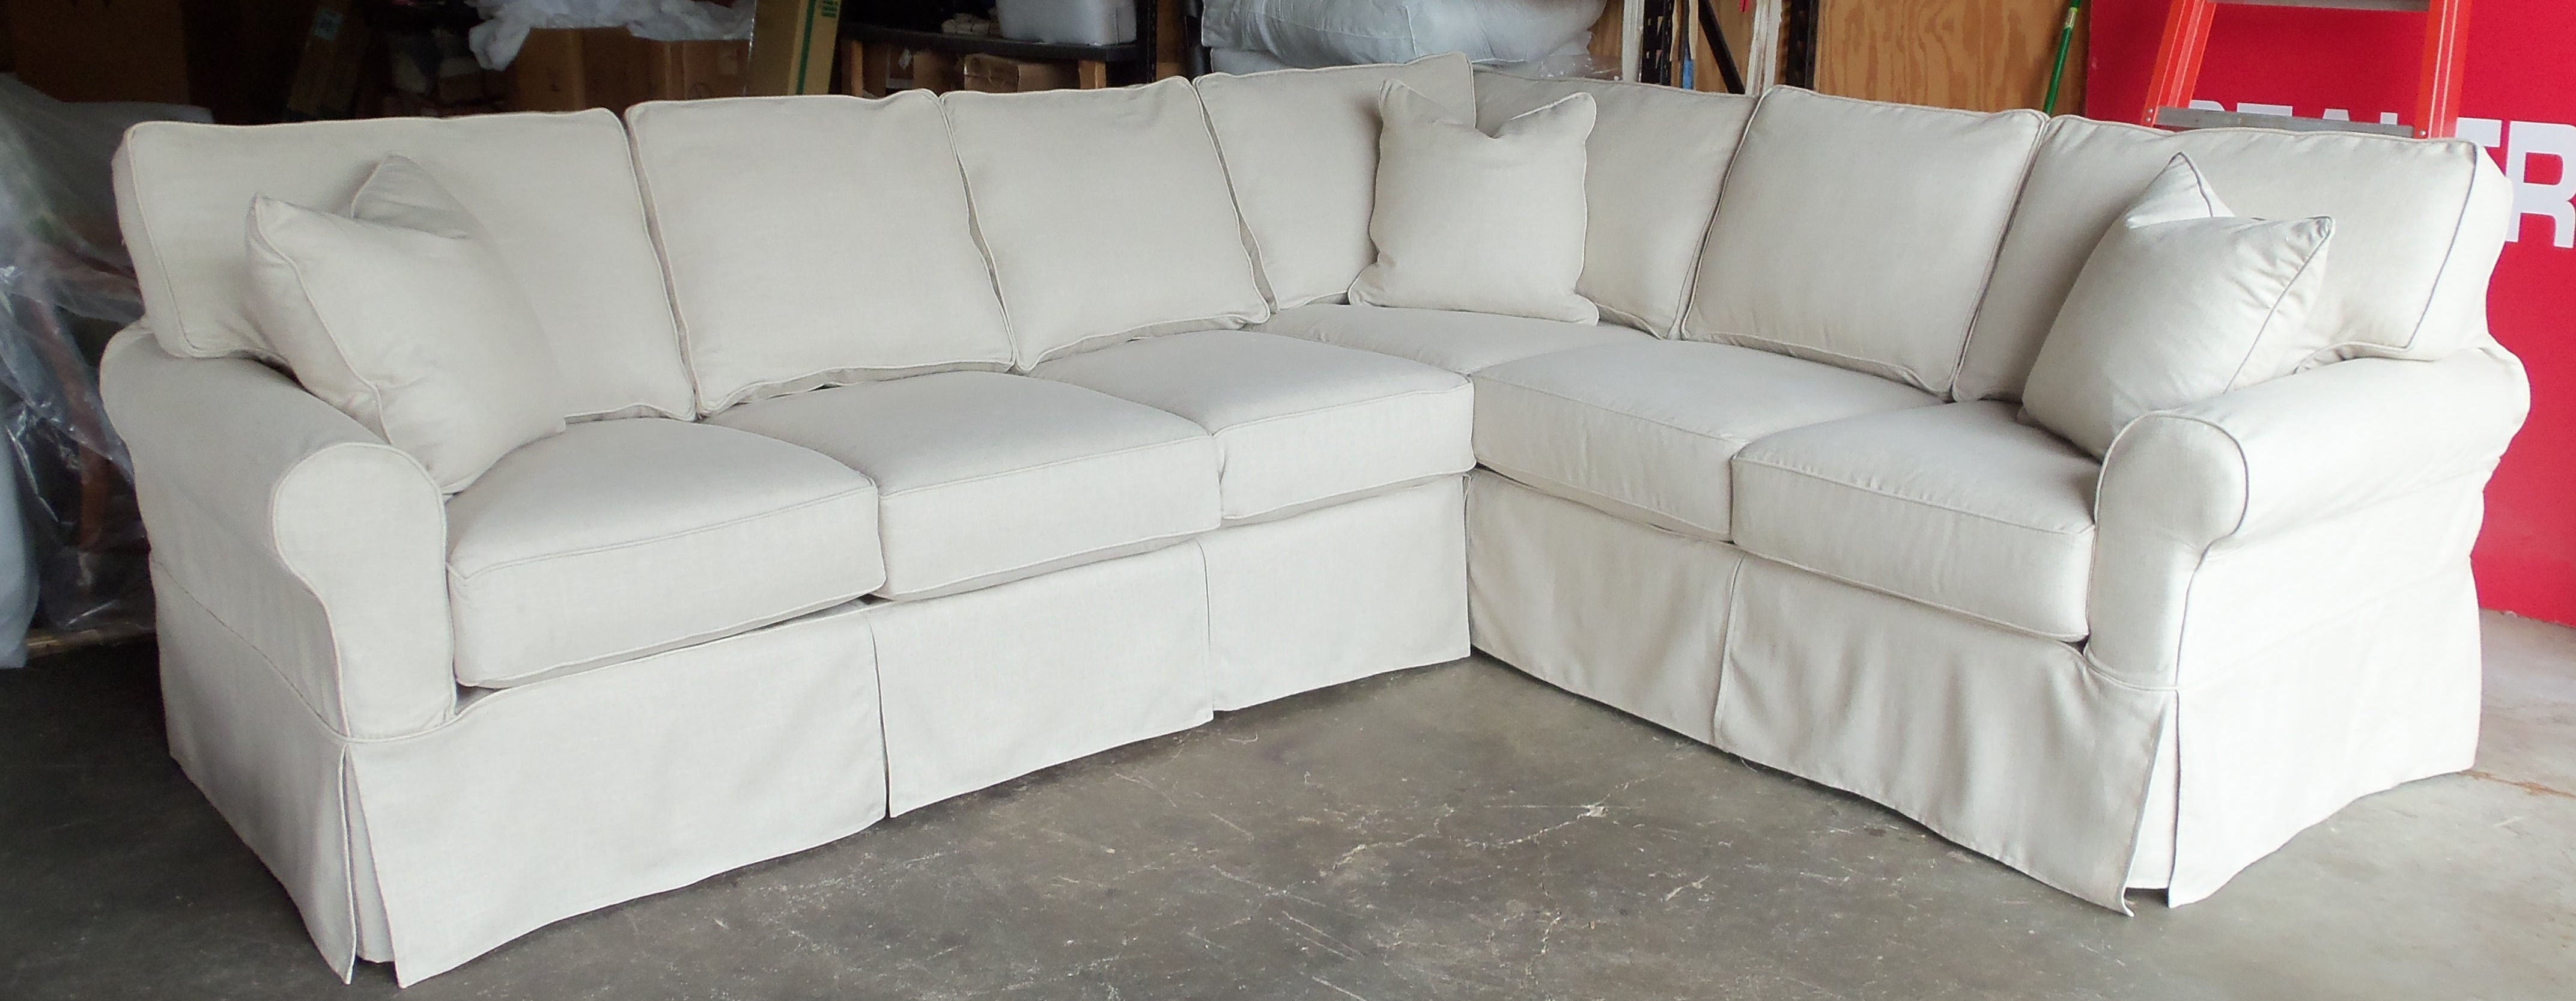 Sectional Sofa Design: Most Comfortable Slipcover Sectional Sofas intended for Sectional Sofas With Covers (Image 12 of 15)